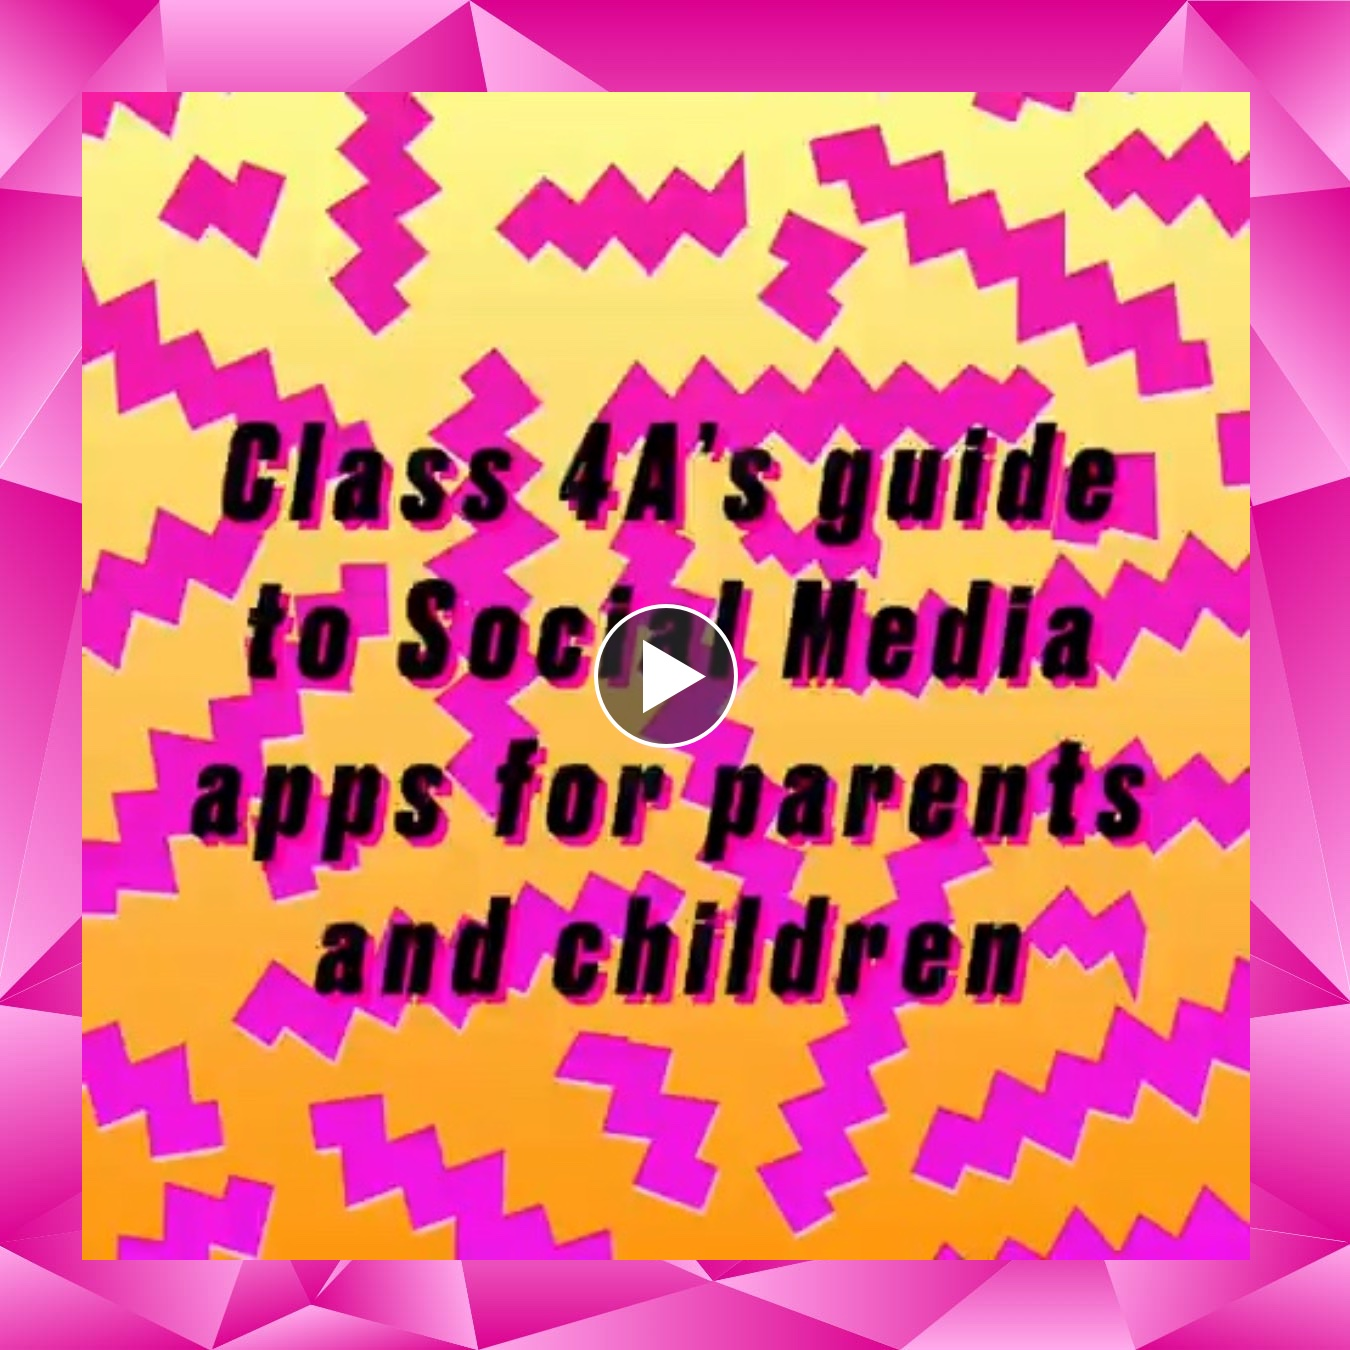 Class 4A's guide to Social Media